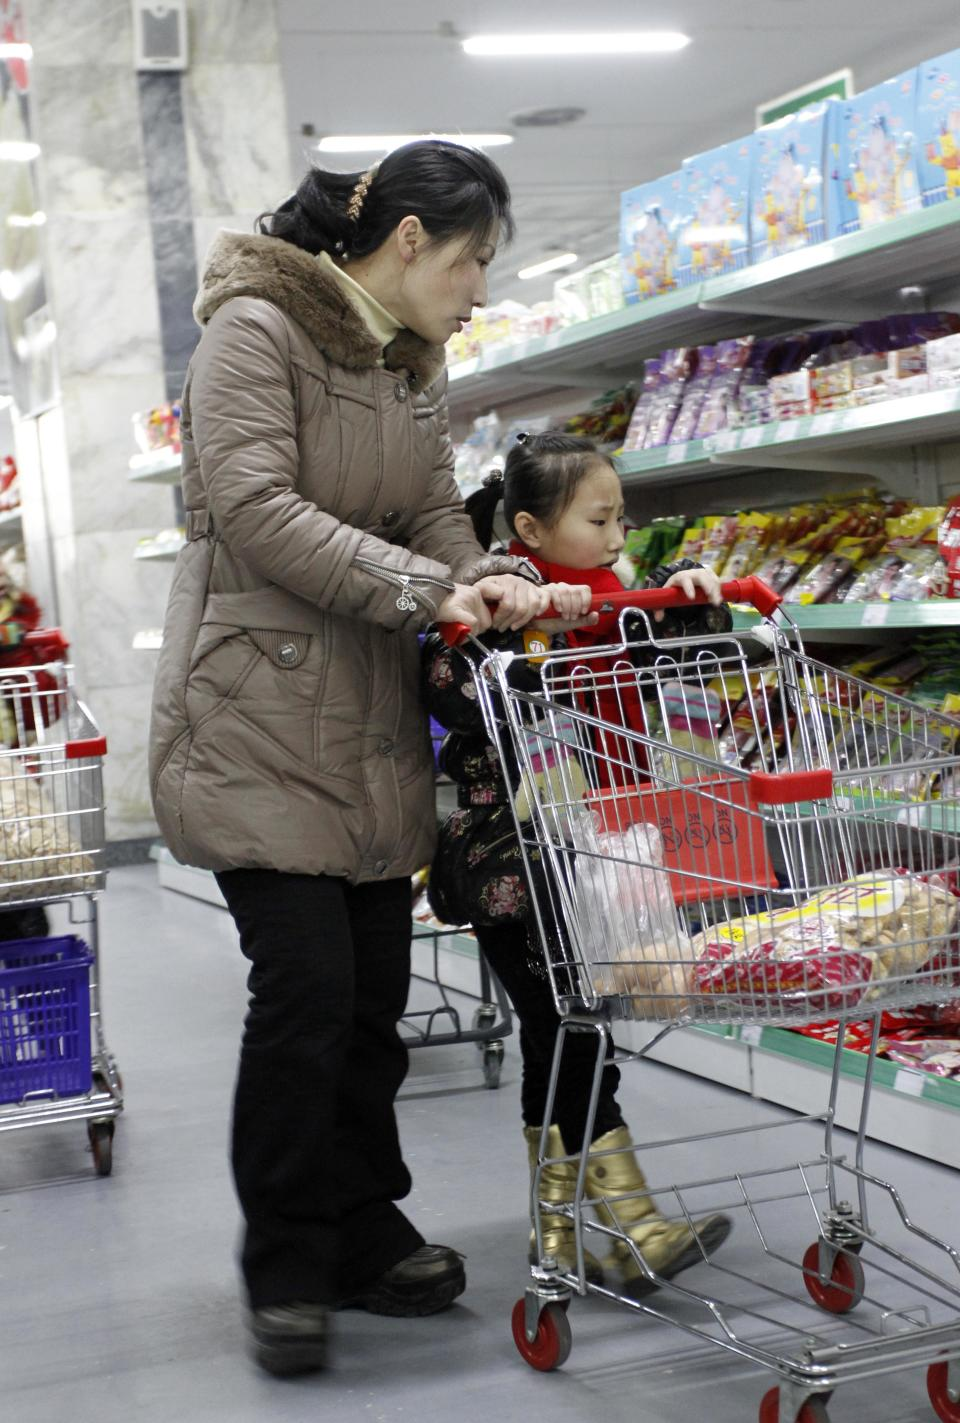 In this Thursday, Jan. 19, 2012 photo, a woman and a young girl push a shopping cart through the Kwangbok Area shopping center as they buy groceries in Pyongyang, North Korea. (AP Photo/Kim Kwang Hyon)